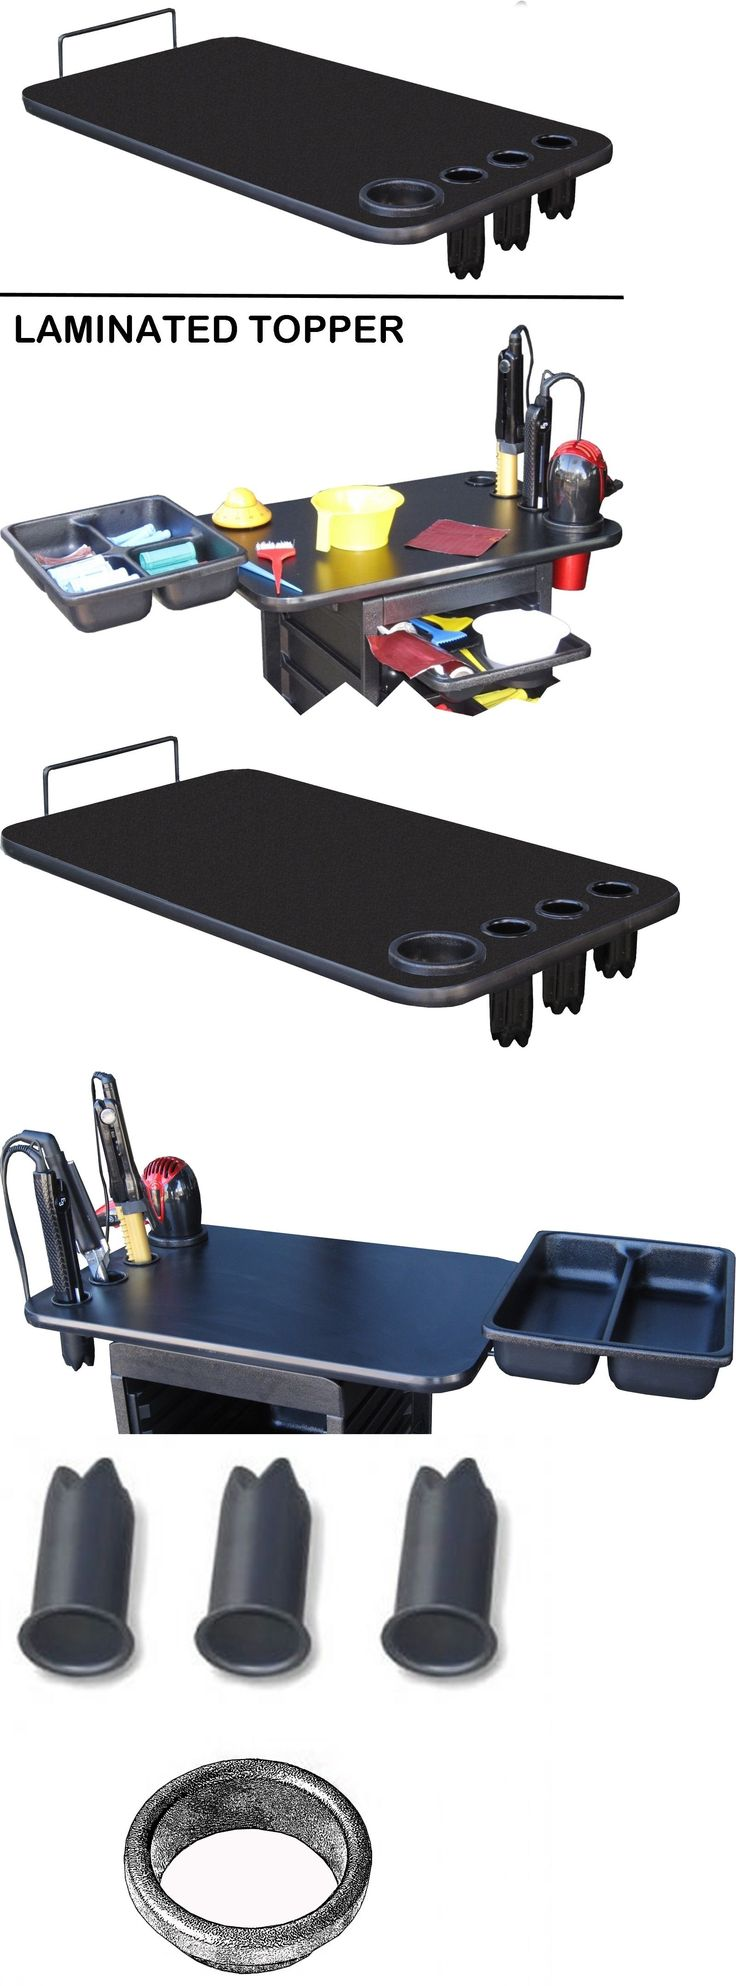 Stylist Stations and Furniture: Laminated Top Topper With Built In Appliance Holder Rollabout Salon Trolley -> BUY IT NOW ONLY: $49.95 on eBay!